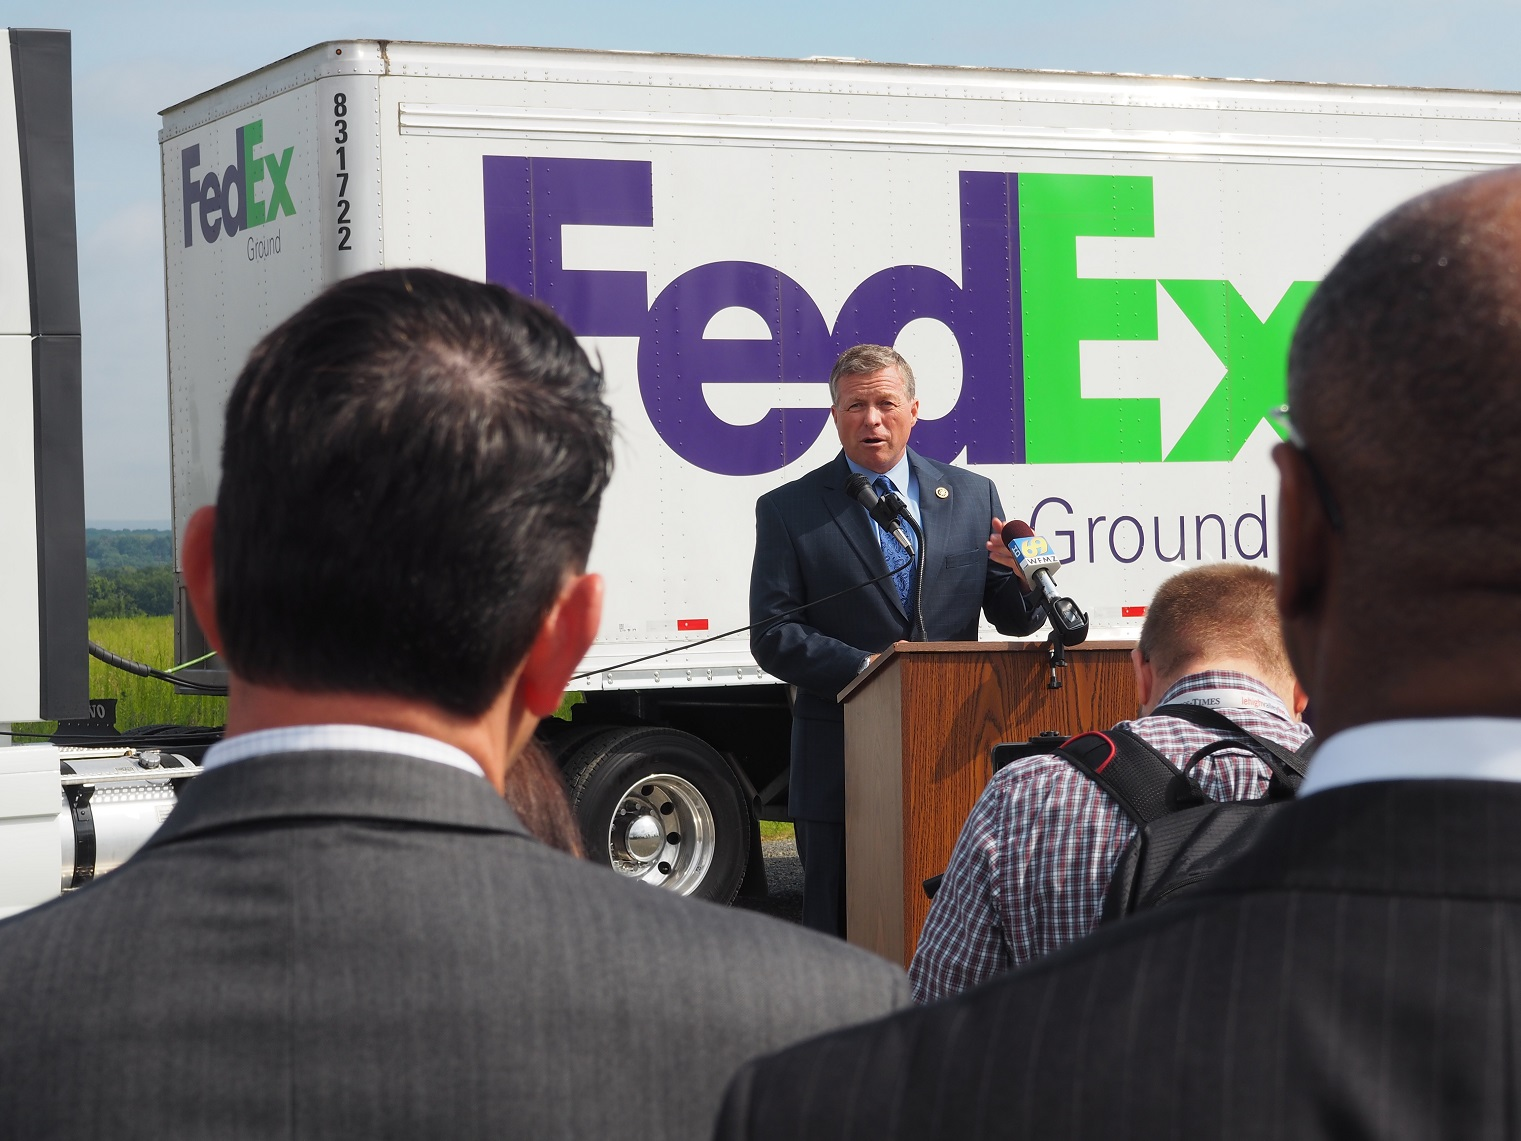 U.S. Rep Charlie Dent speaking at the Fedex Ground groundbreaking in Allen Township.